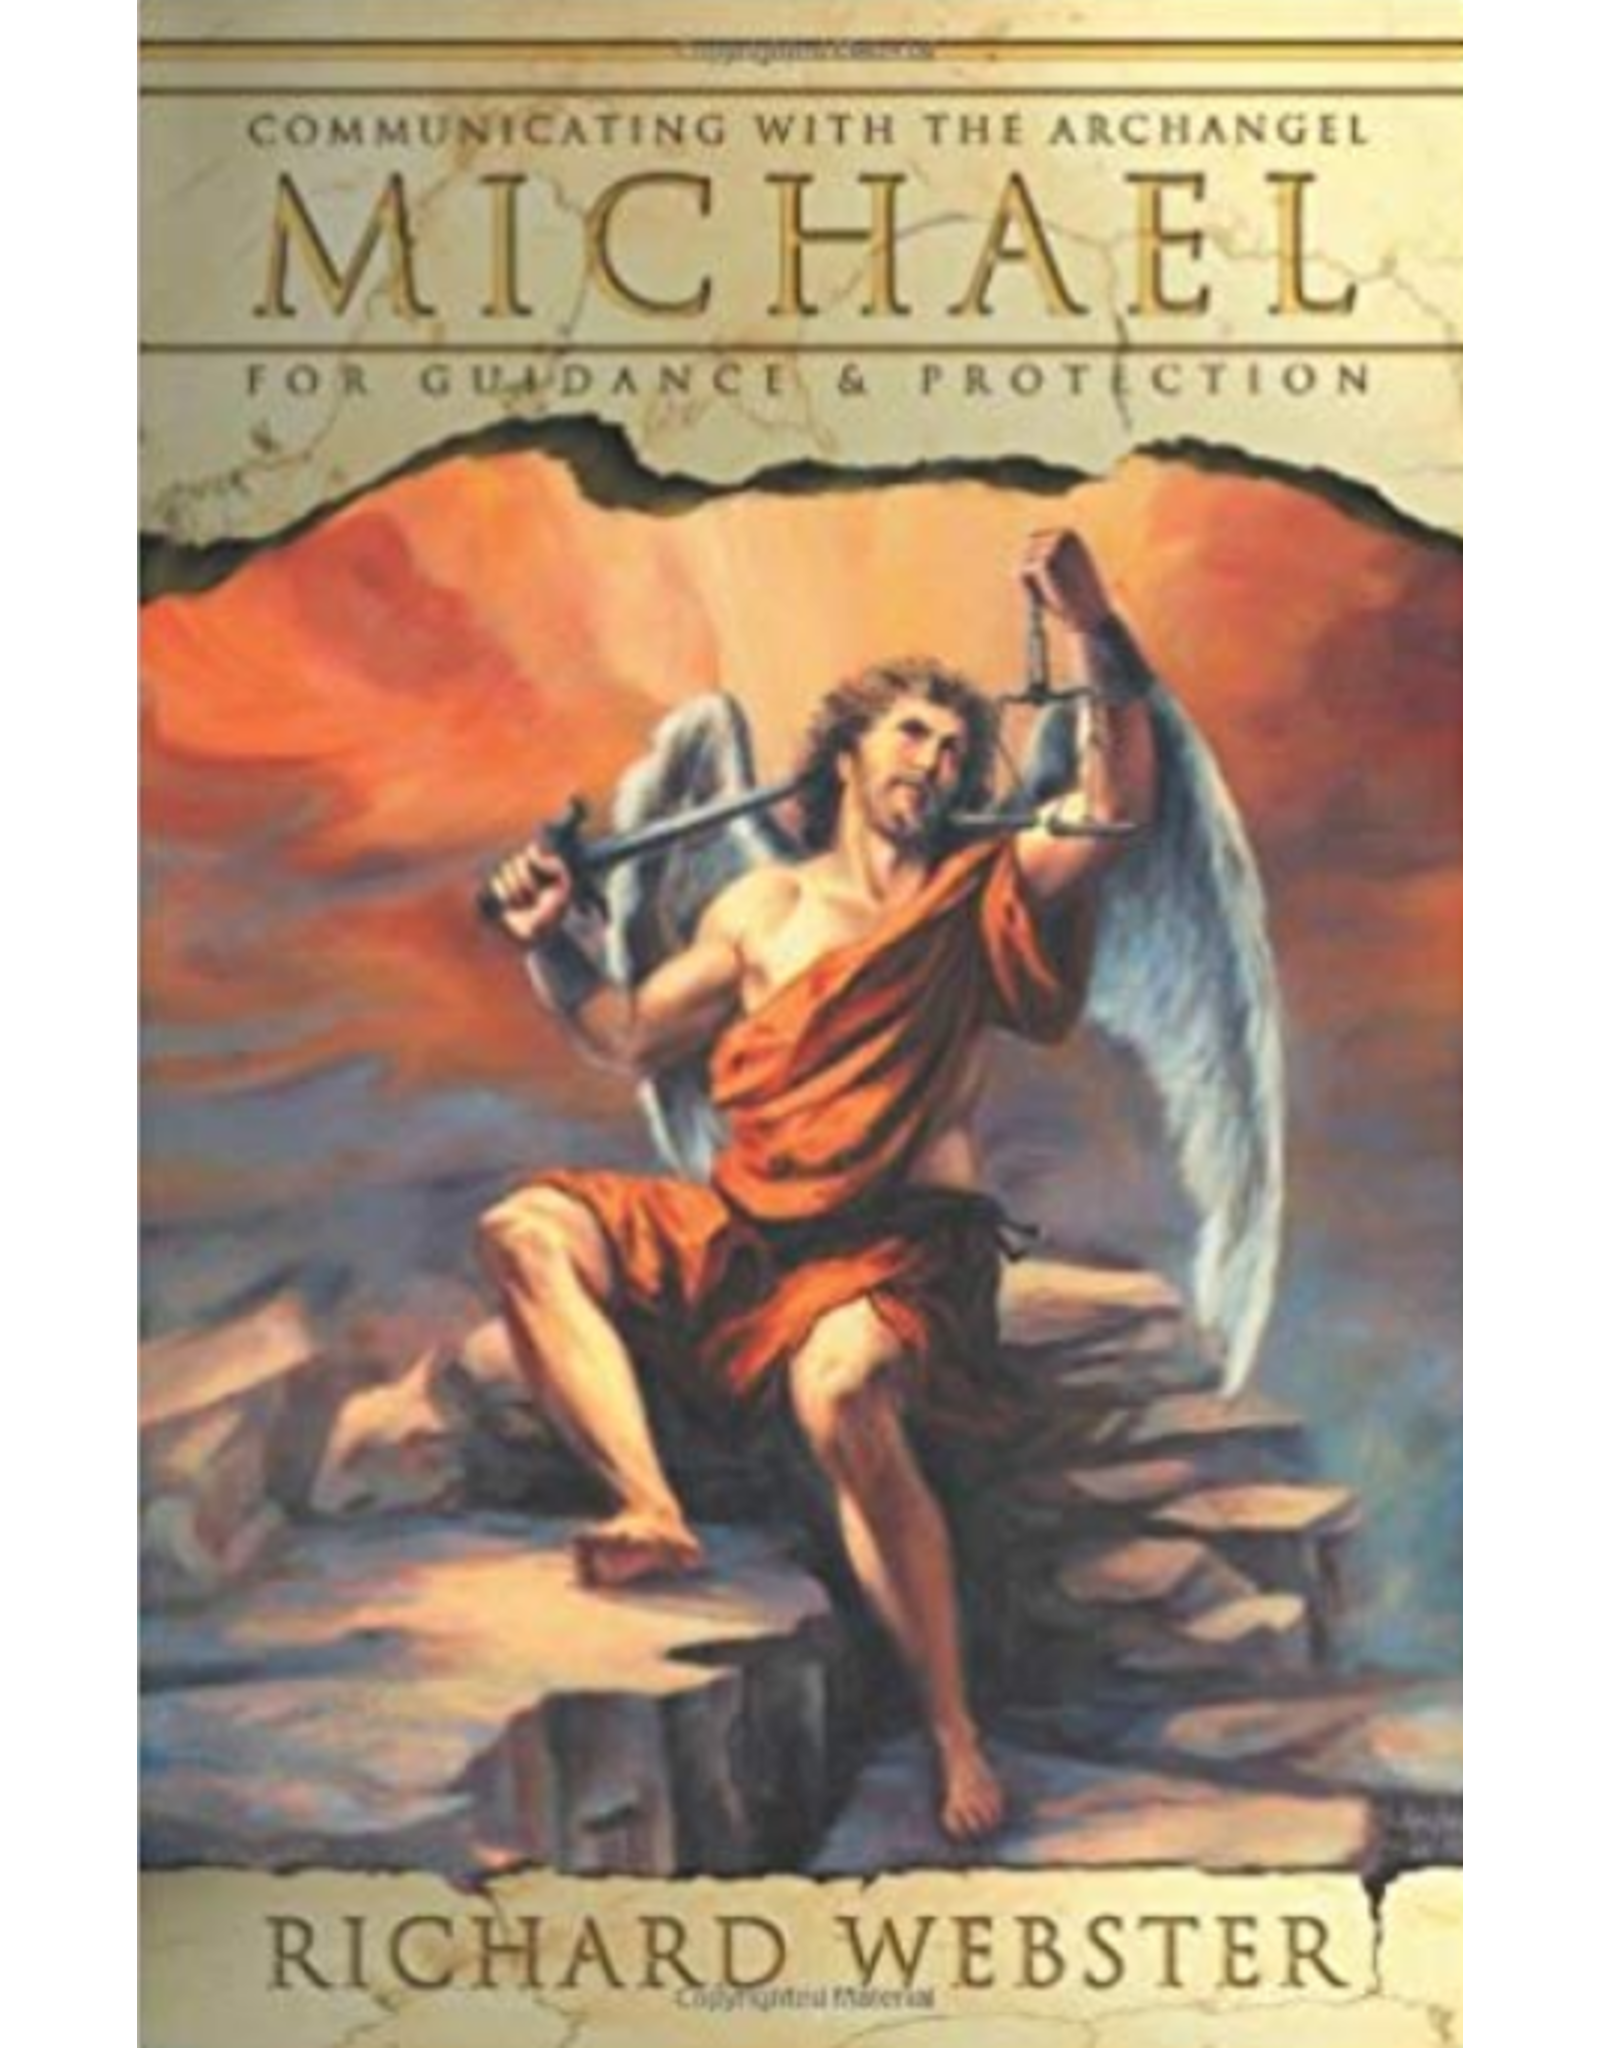 Communicating with the Archangel Michael